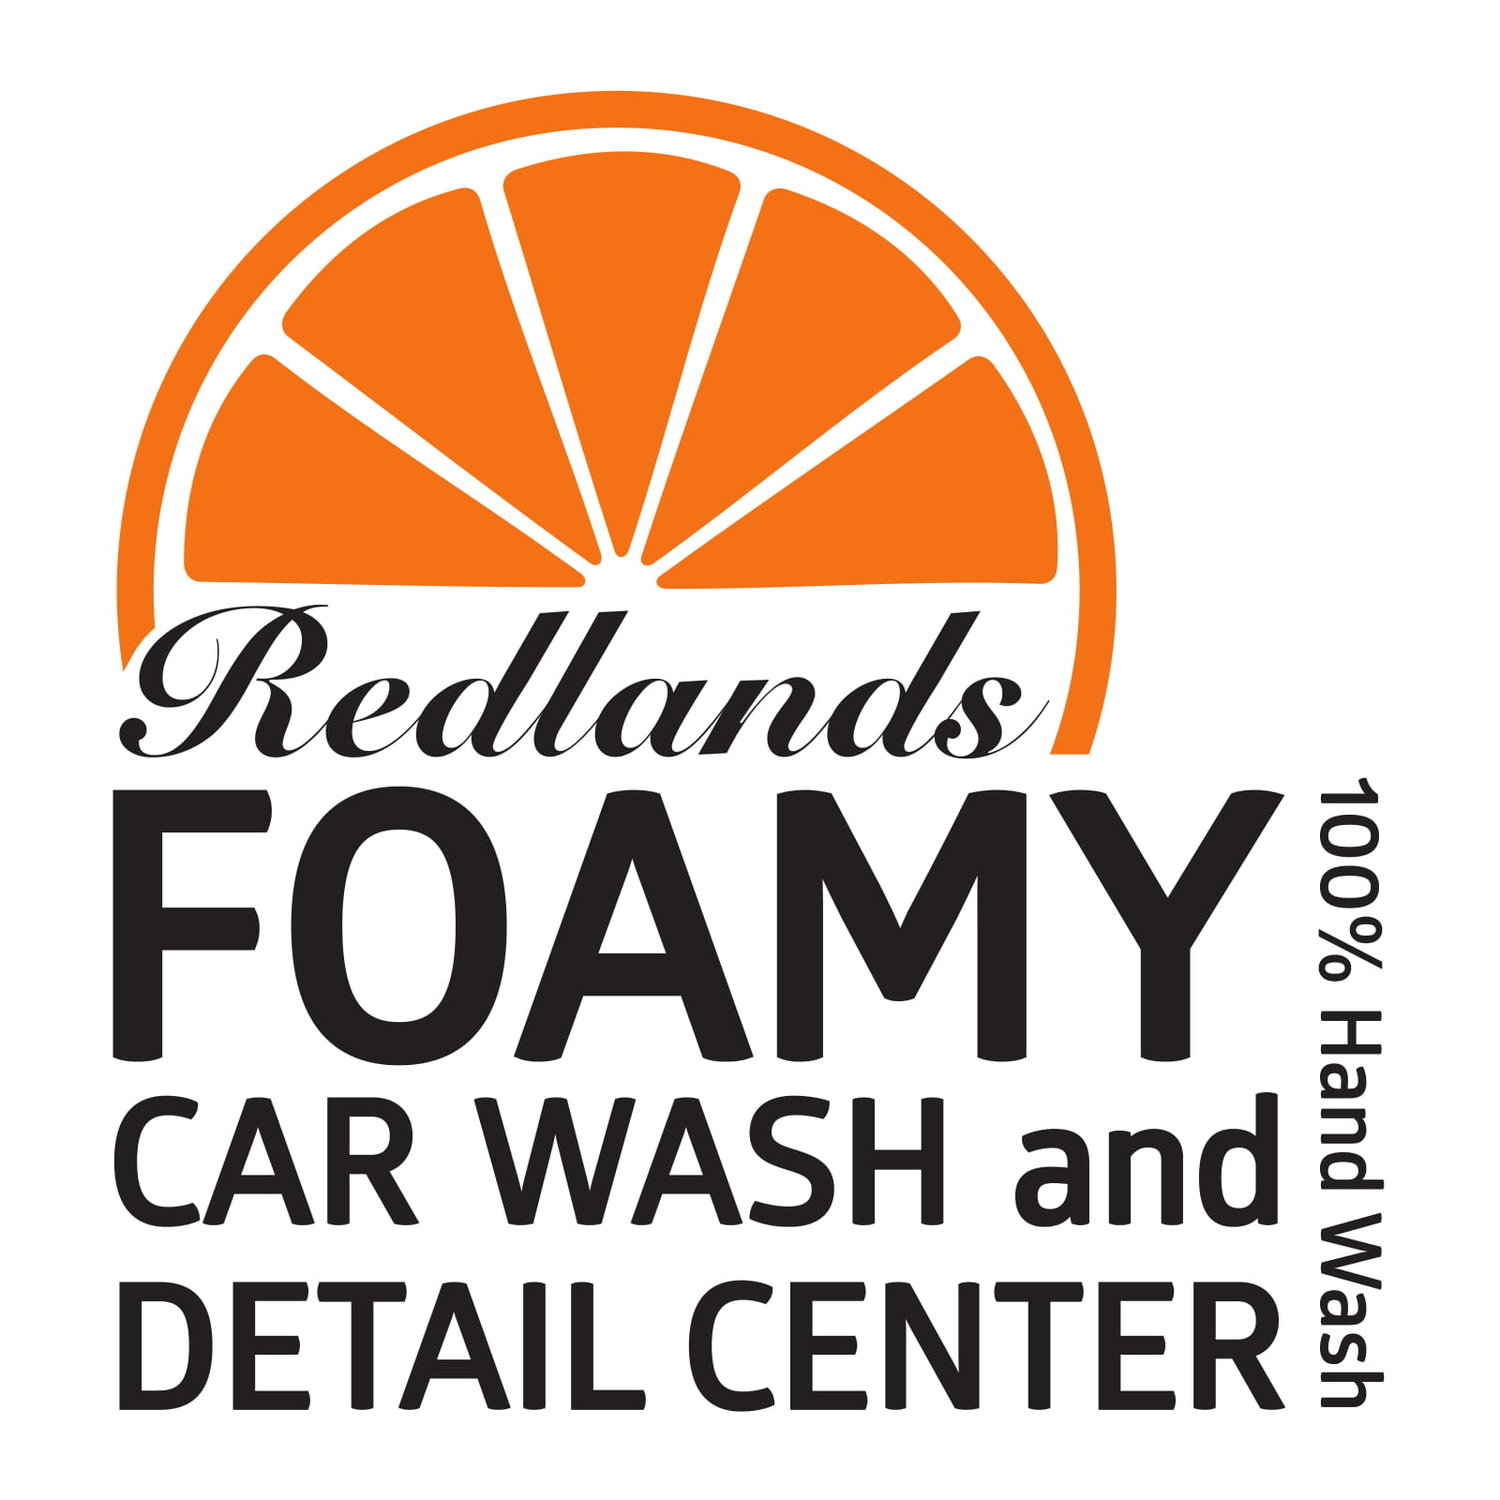 Foamy Car Wash & Detail Center